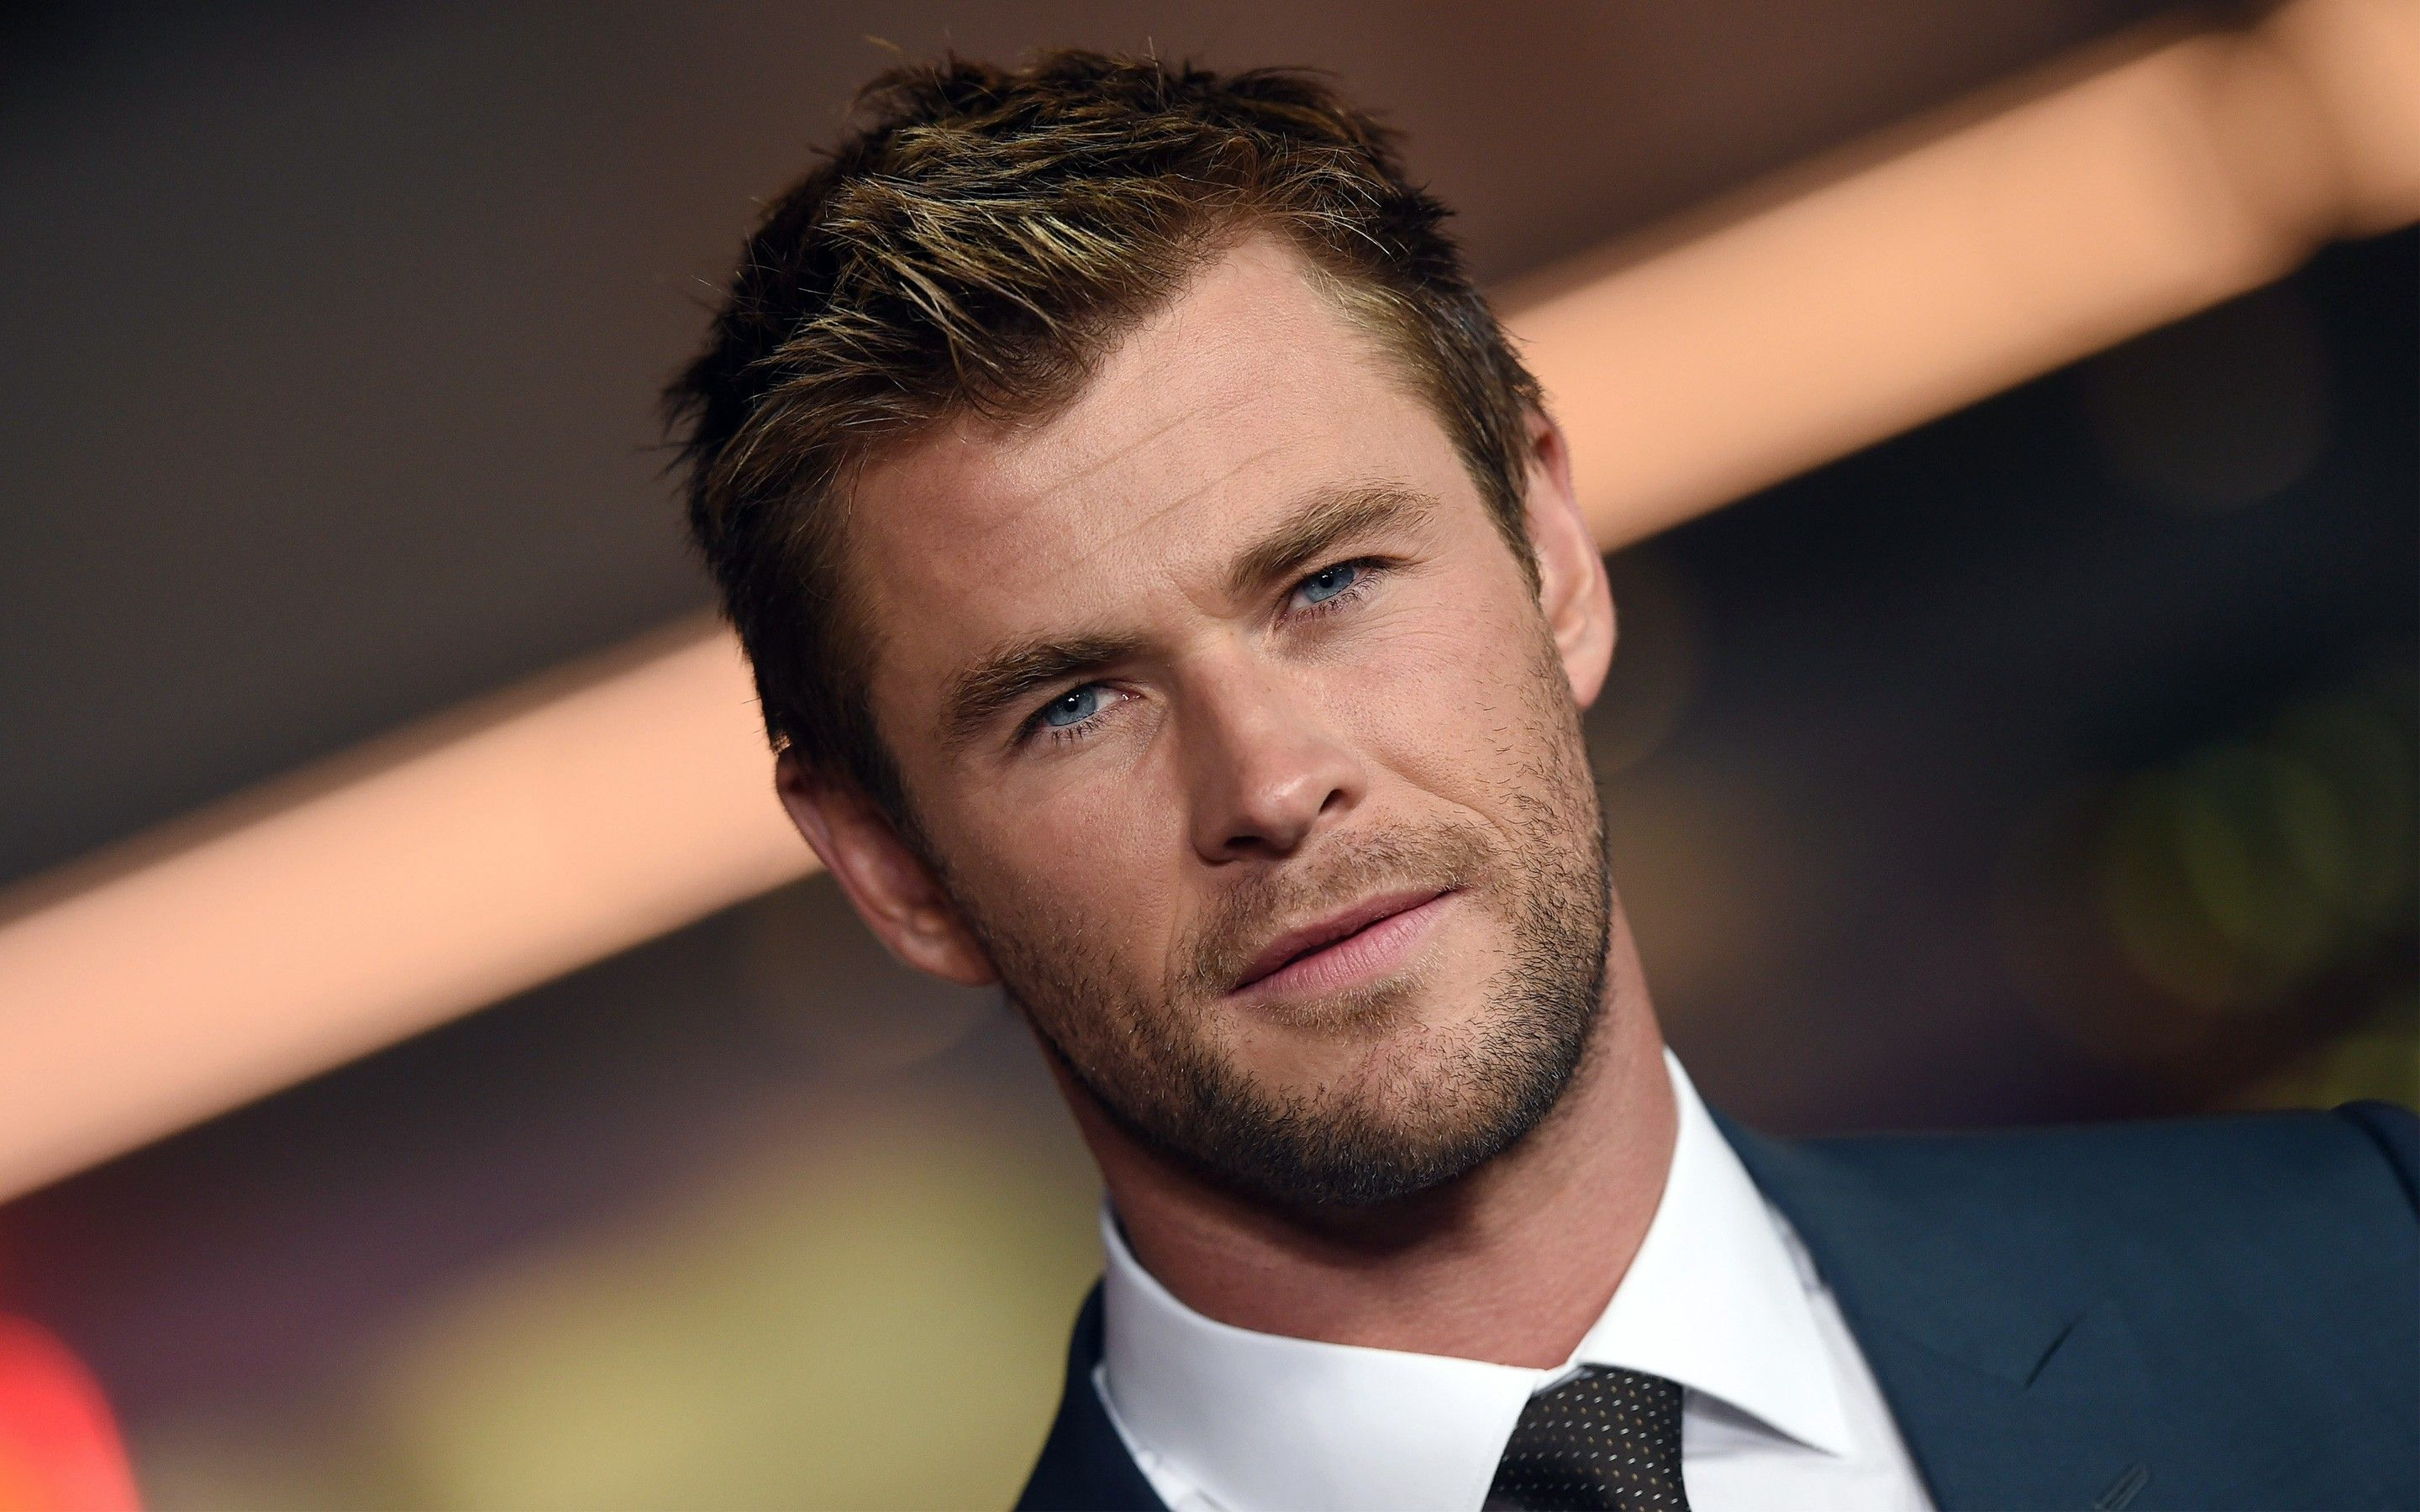 Chris Hemsworth High Resolution Definition Quality Desktop Background